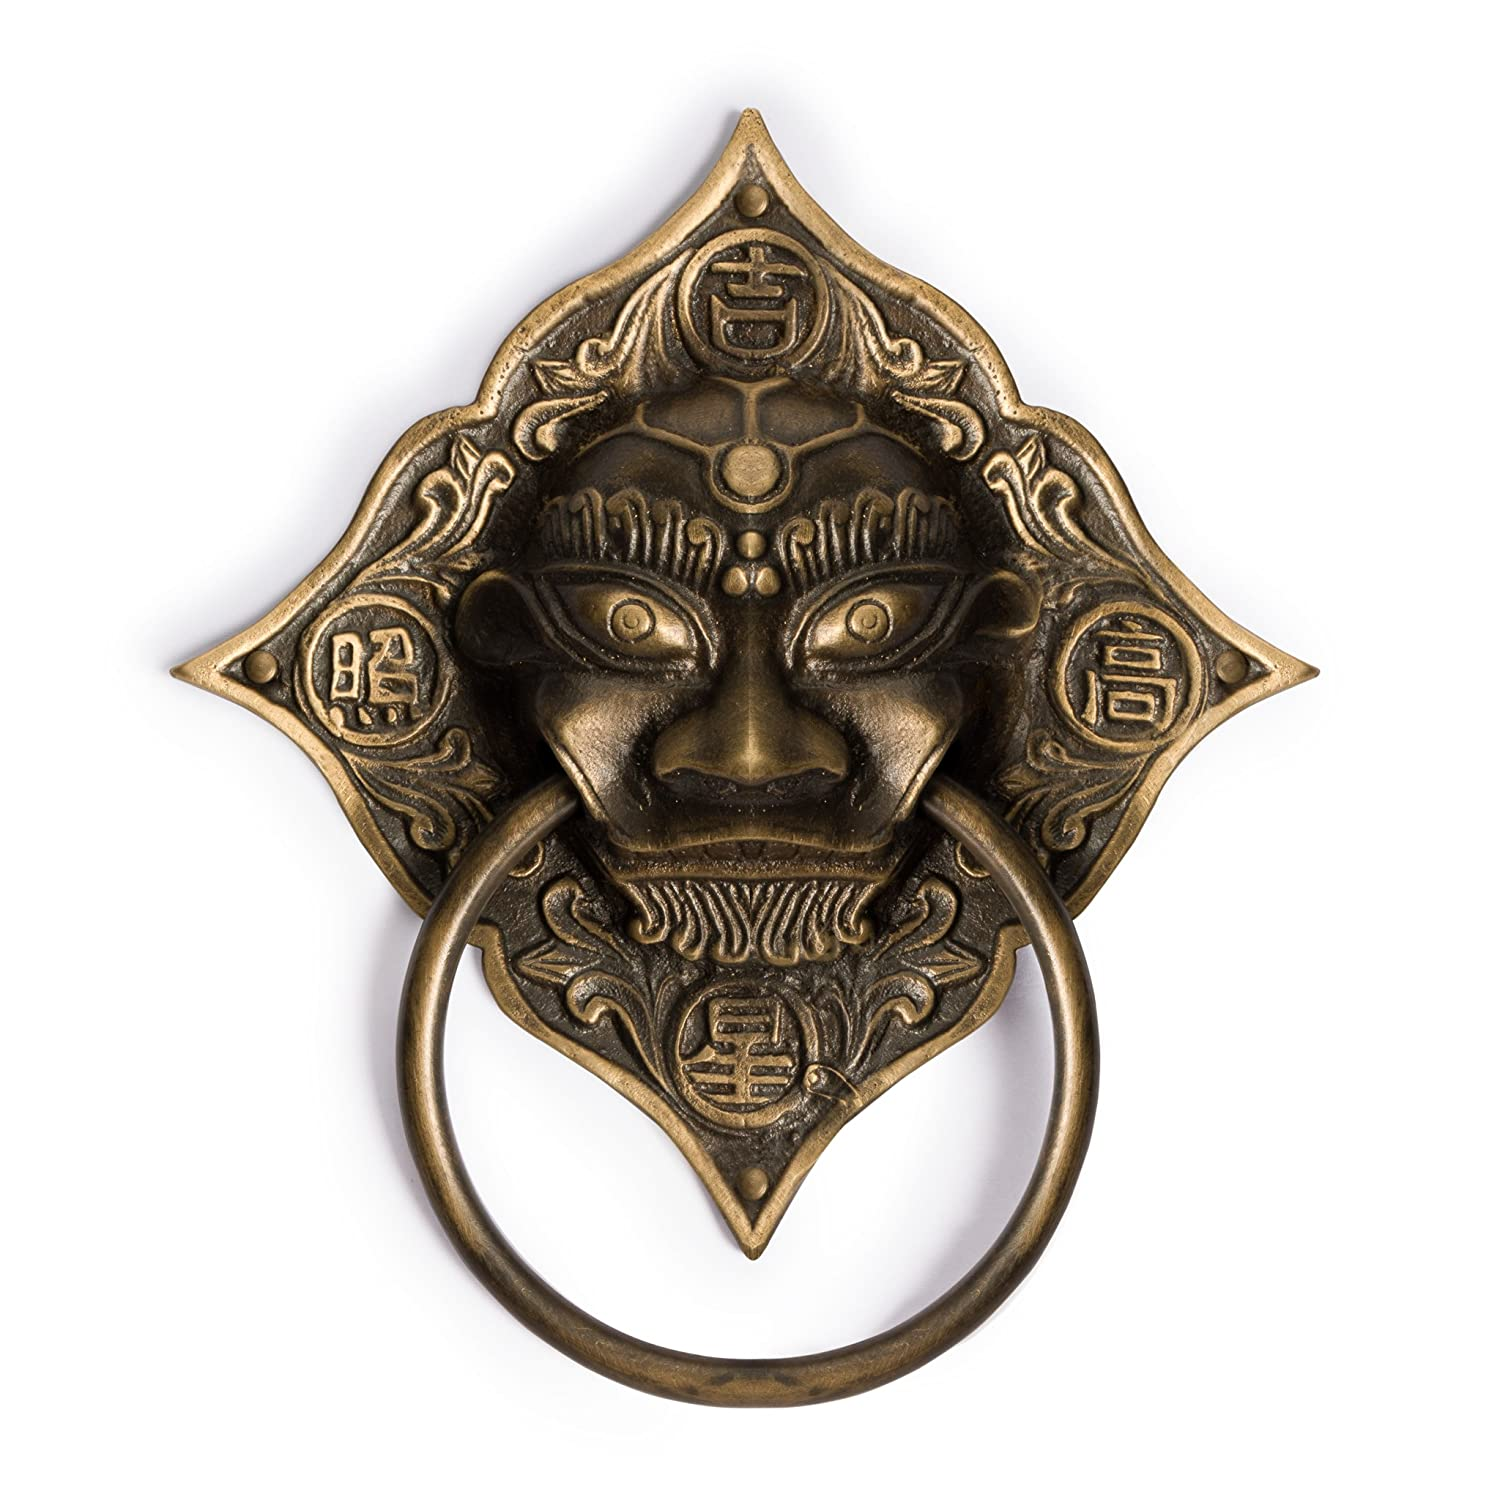 CBH Chinese Angry Lion Brass Door Gate Pull Hardware 7.5 Gate ...